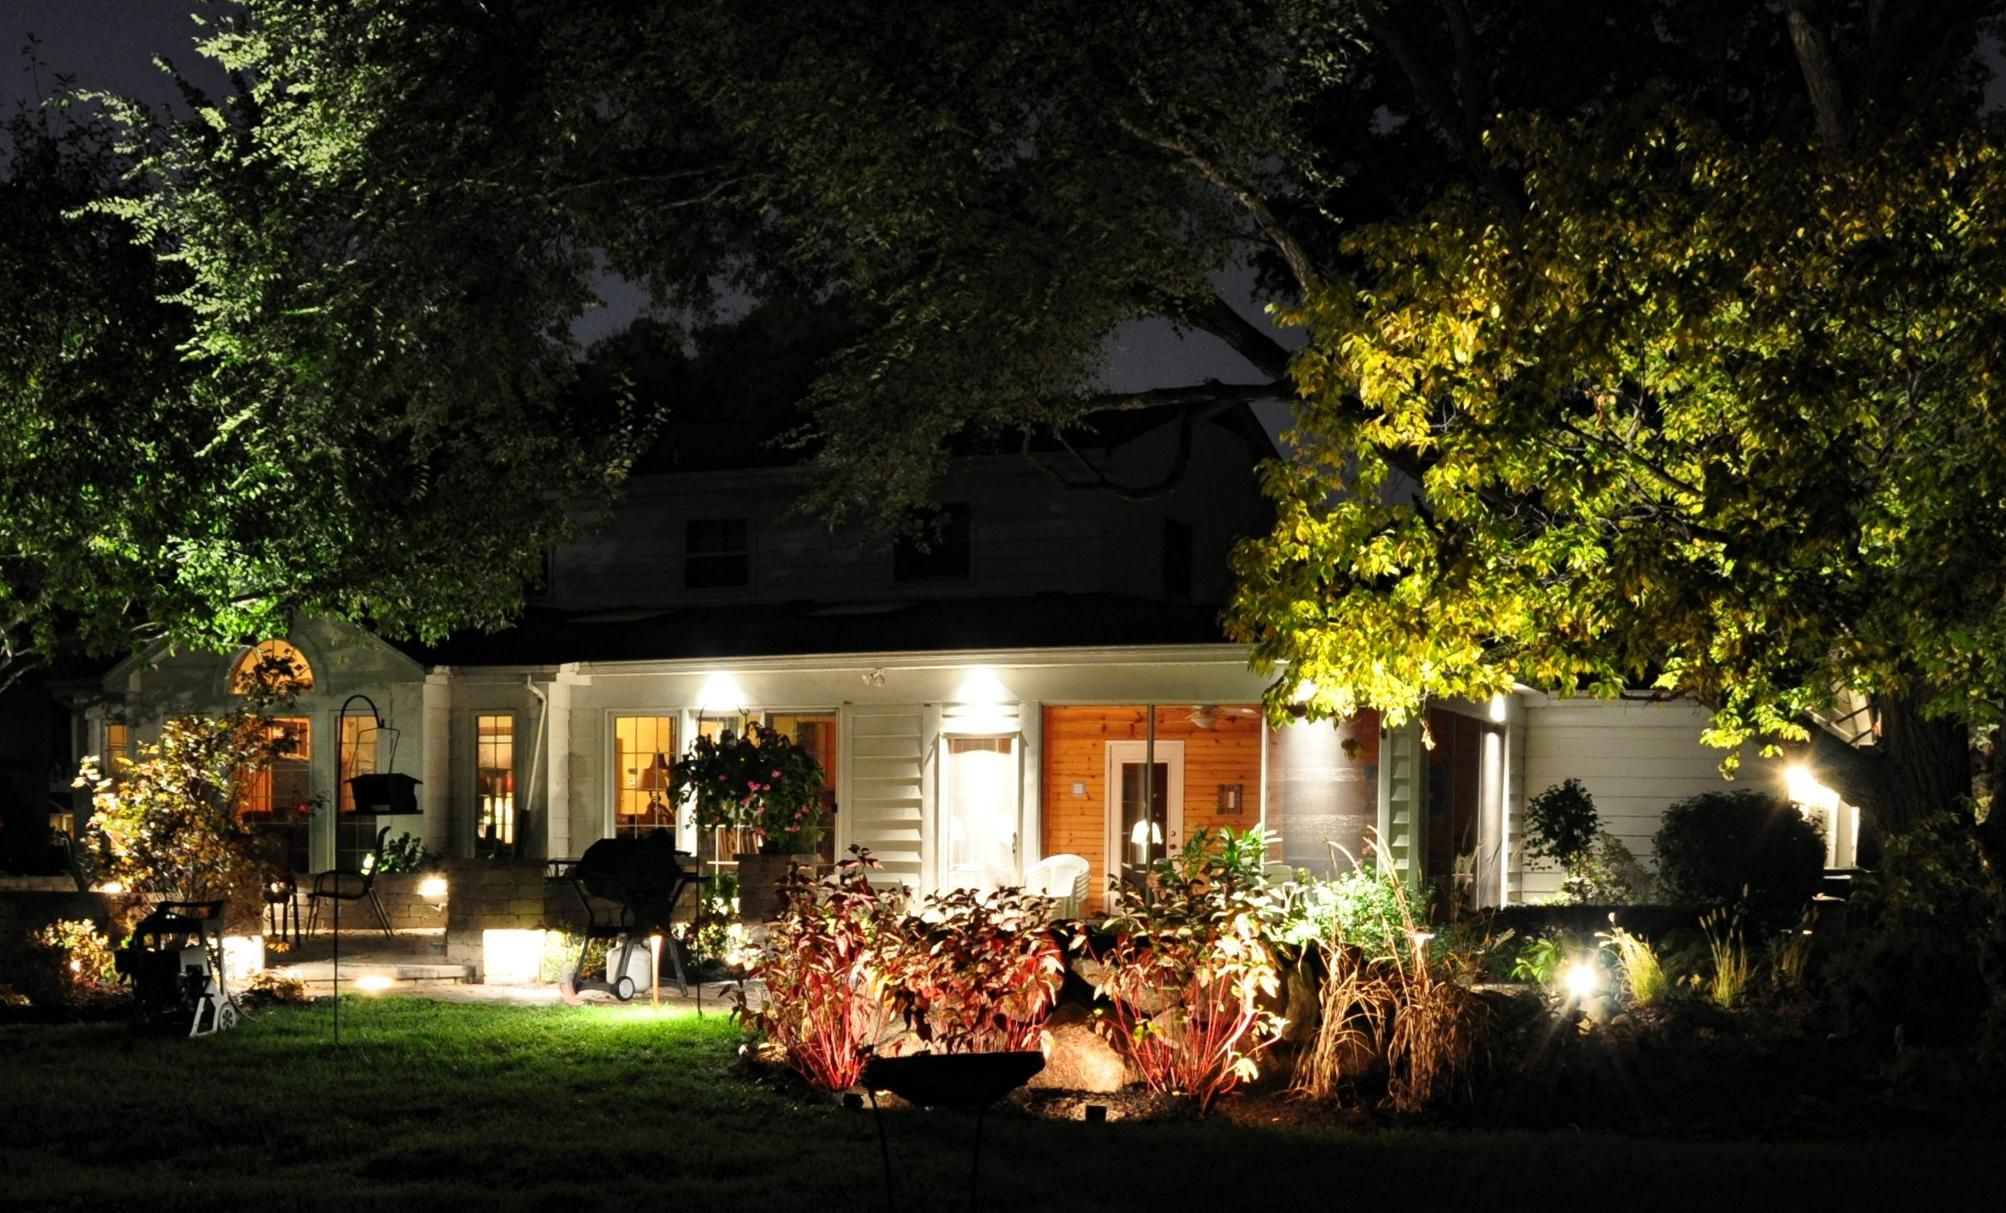 outdoor landscape lighting ideas illuminate your garden to give it a festive appearance click for - Landscape Lighting Design Ideas